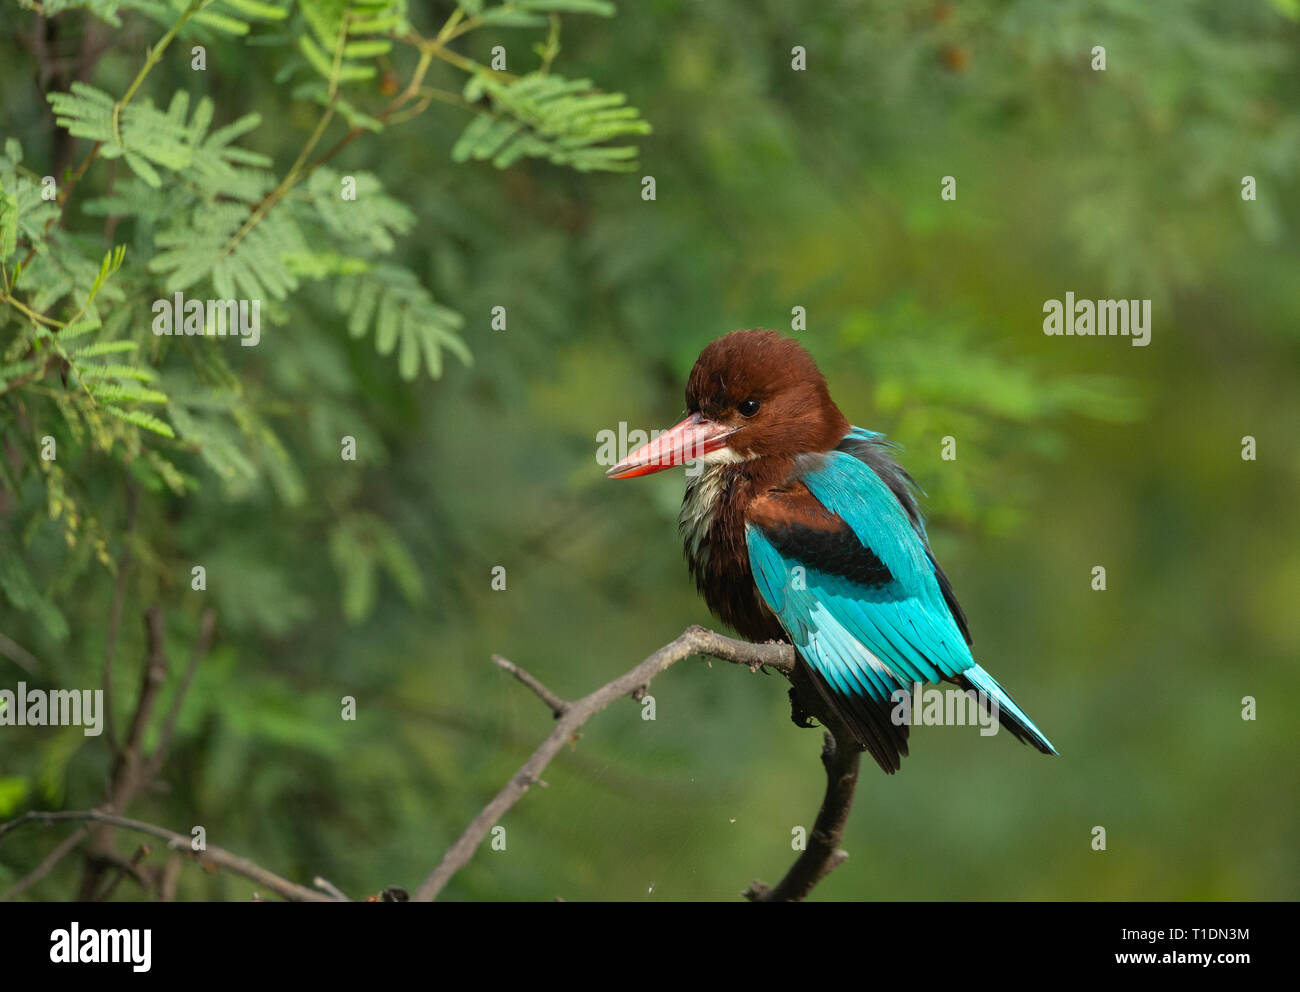 White-Breasted Kingfisher sitting on a perch at Bharatpur Bird Sanctuary,Rajasthan,India - Stock Image